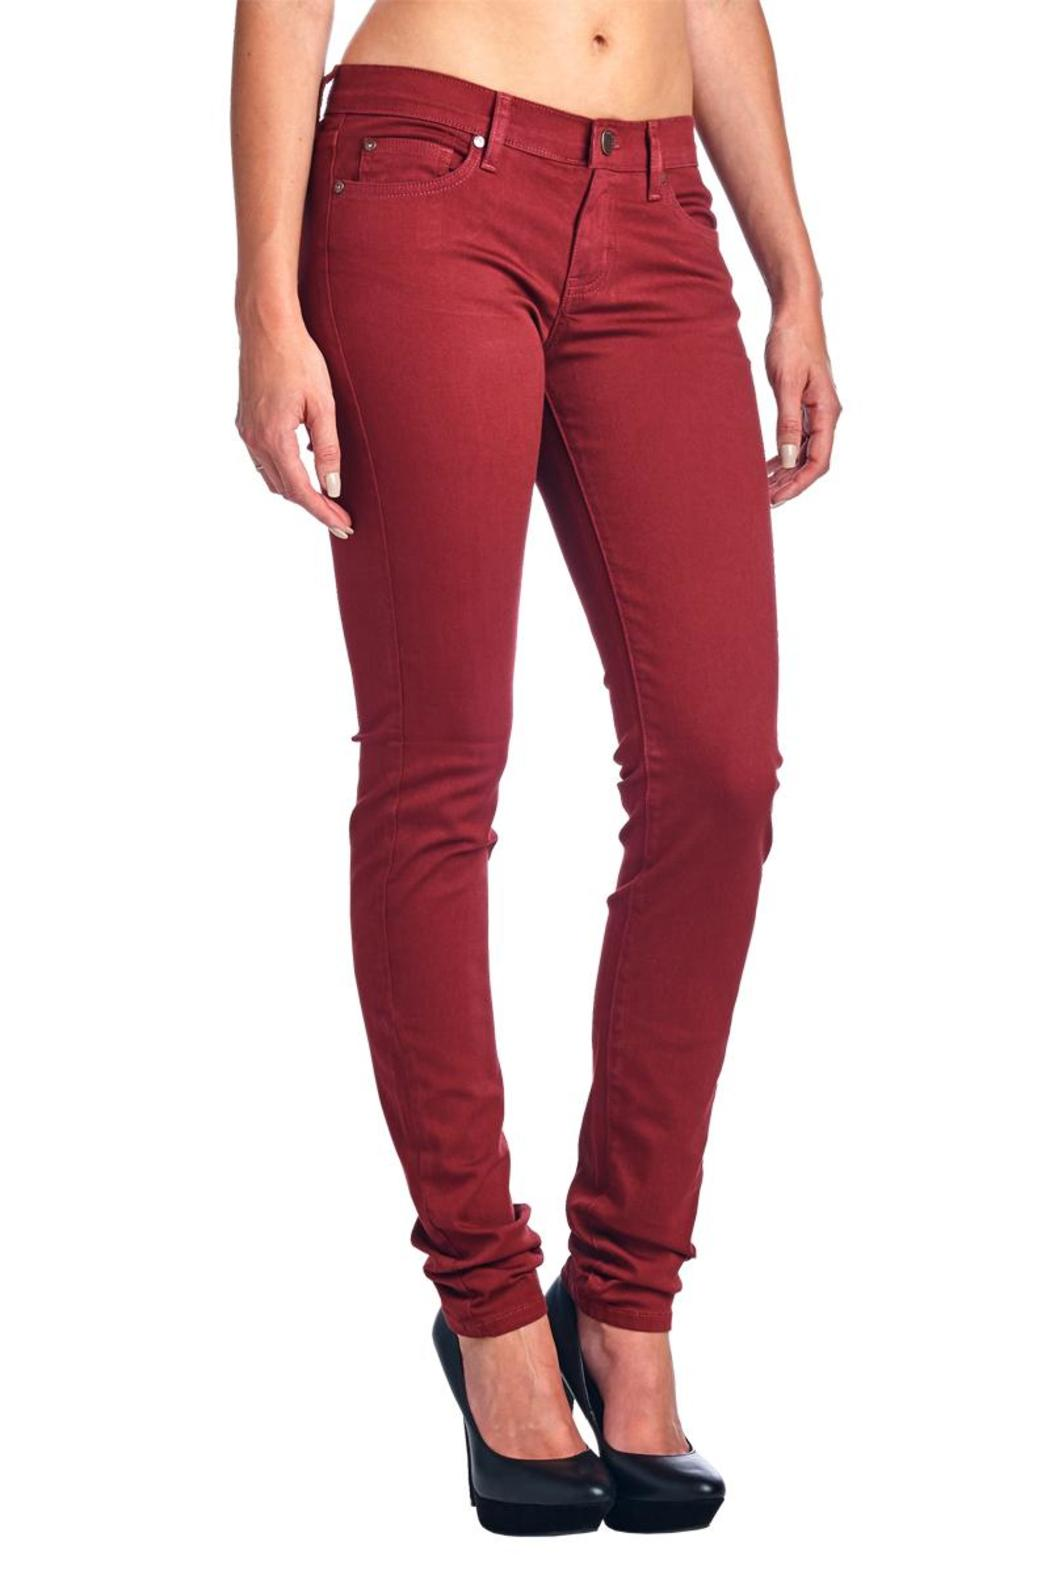 angry_rabbit-colored-skinny-jeans-2-red-d81d1a6a_l.jpg